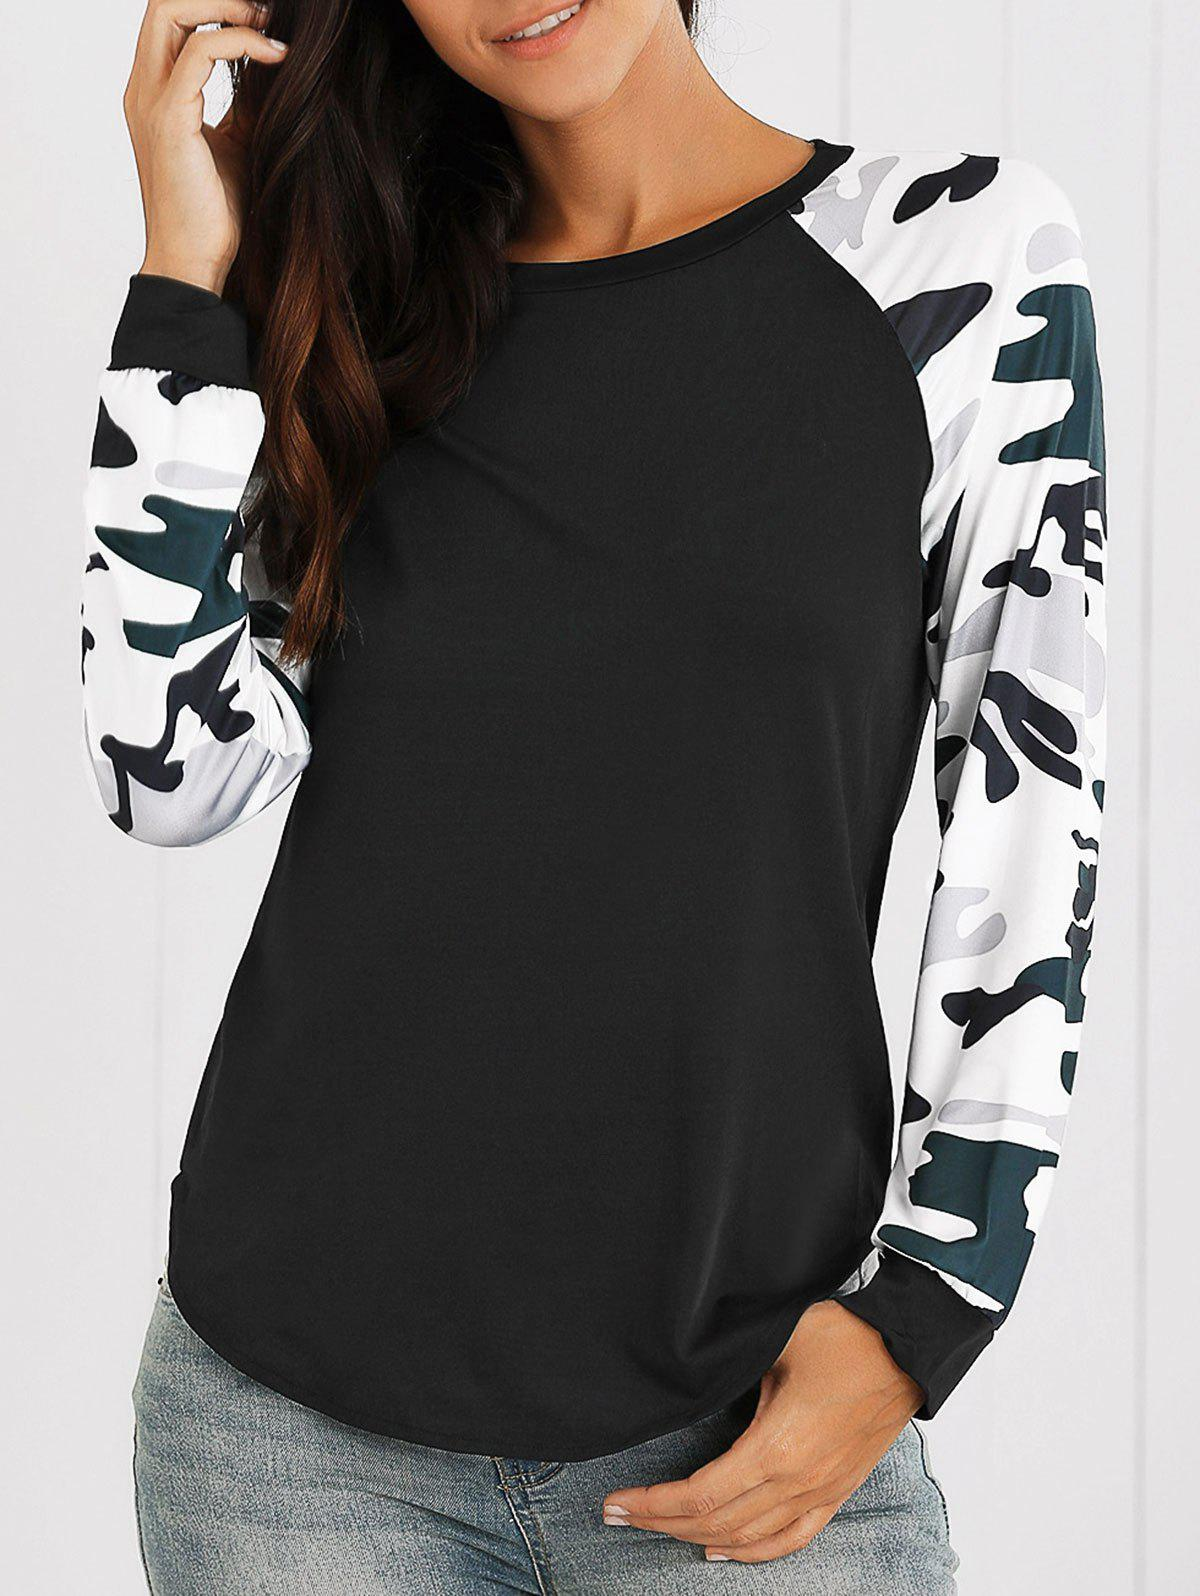 Raglan Sleeves Camo Print Asymmetric T-ShirtWOMEN<br><br>Size: S; Color: BLACK; Material: Polyester; Sleeve Length: Full; Collar: Round Neck; Style: Casual; Pattern Type: Others; Season: Fall,Spring; Weight: 0.1800kg; Package Contents: 1 x T-Shirt;